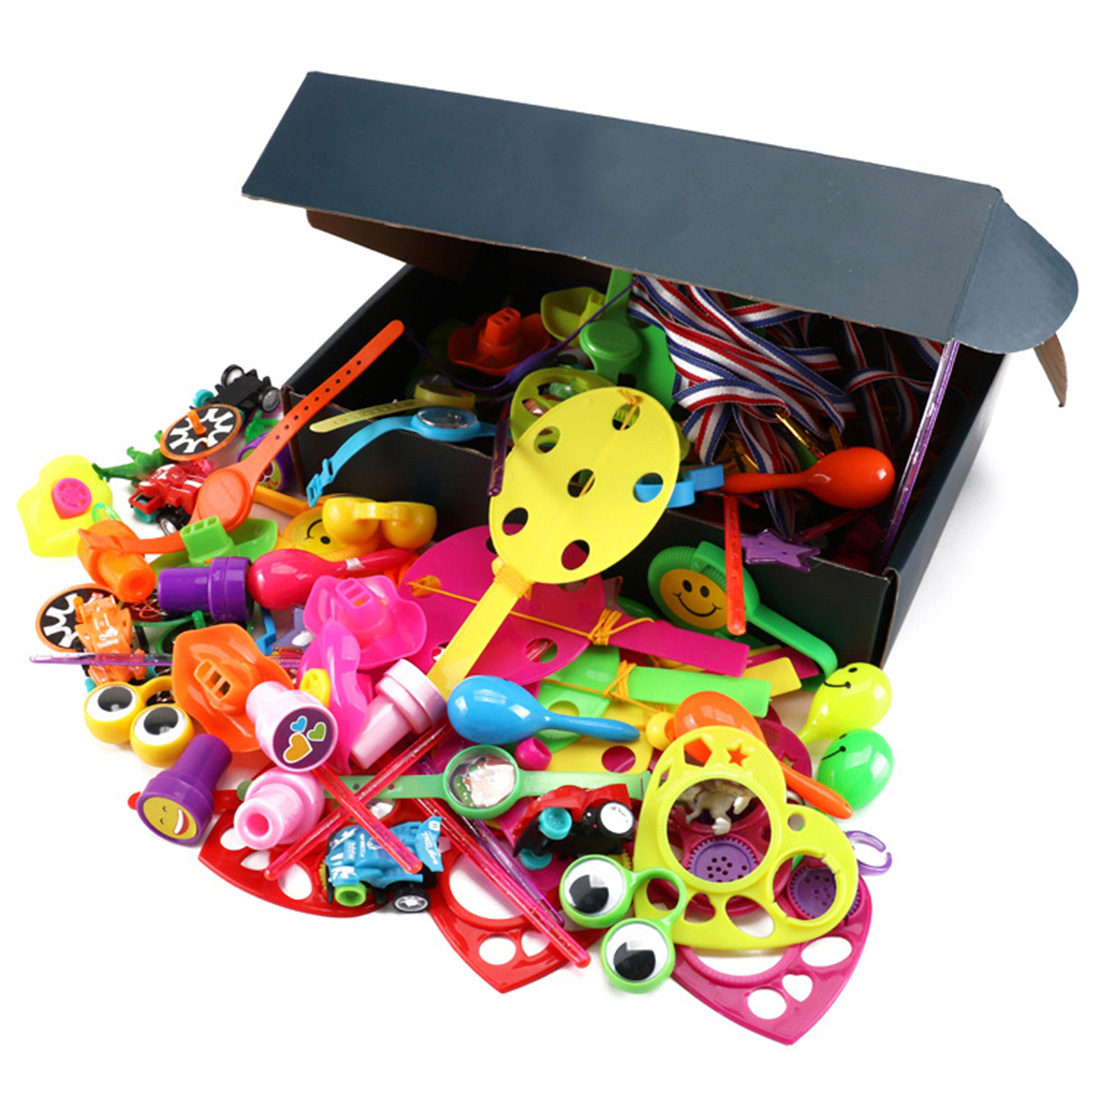 120Pcs Children Birthday Party Giveaways Prizes Assorted Small Toys Set  Party Favors toys for Kids Birthday gift120Pcs Children Birthday Party Giveaways Prizes Assorted Small Toys Set  Party Favors toys for Kids Birthday gift